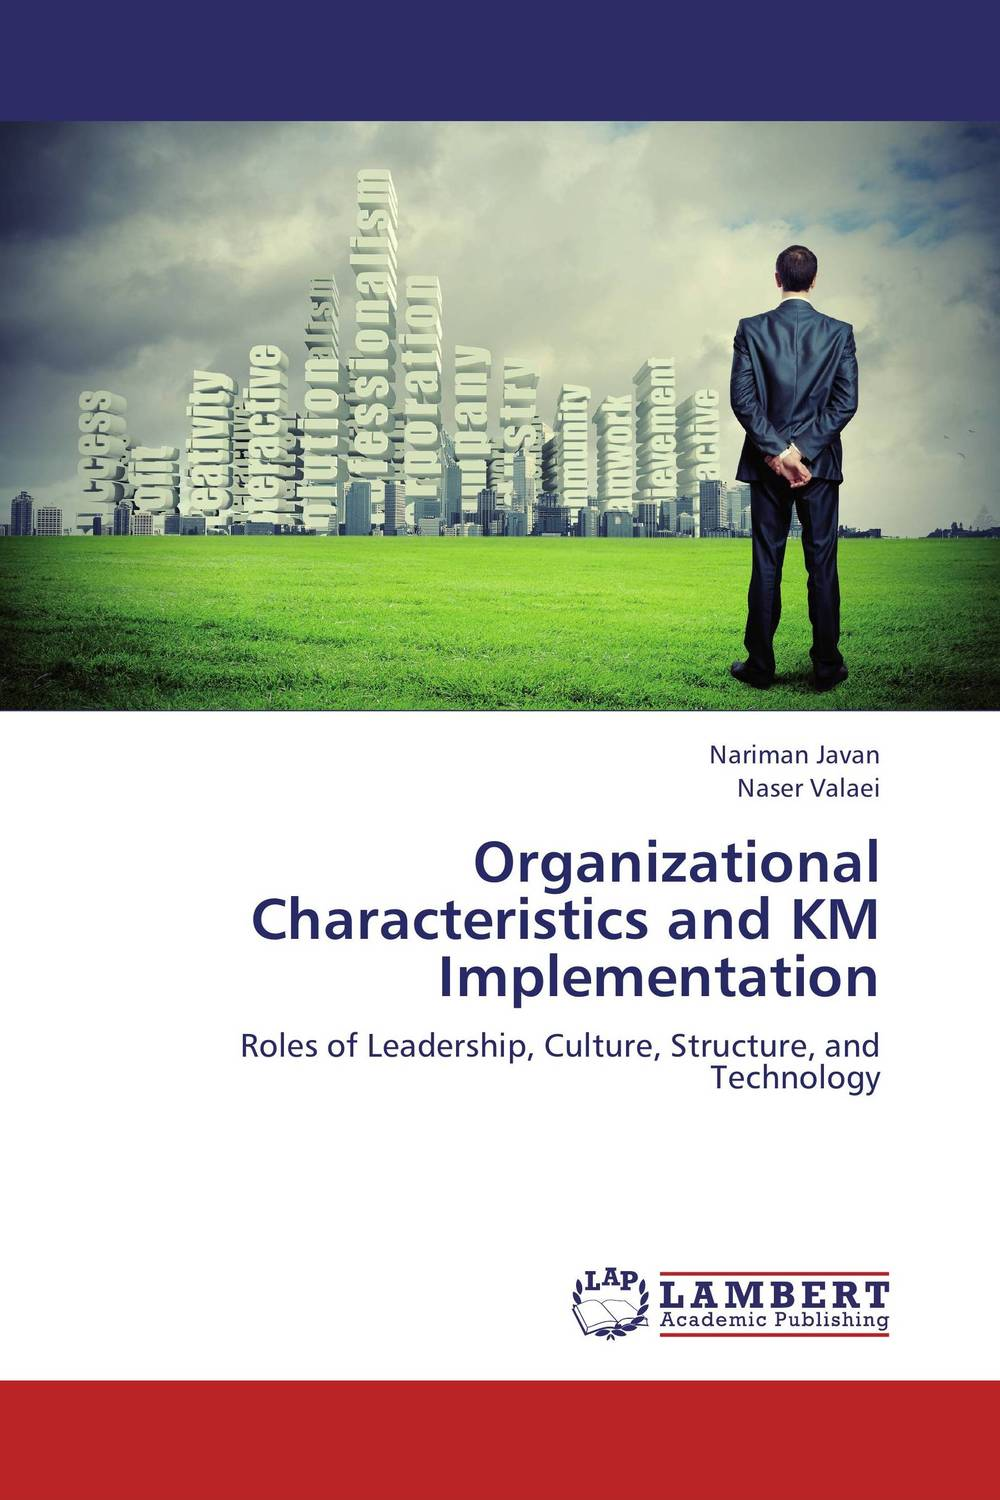 Organizational Characteristics and KM Implementation peter schein organizational culture and leadership